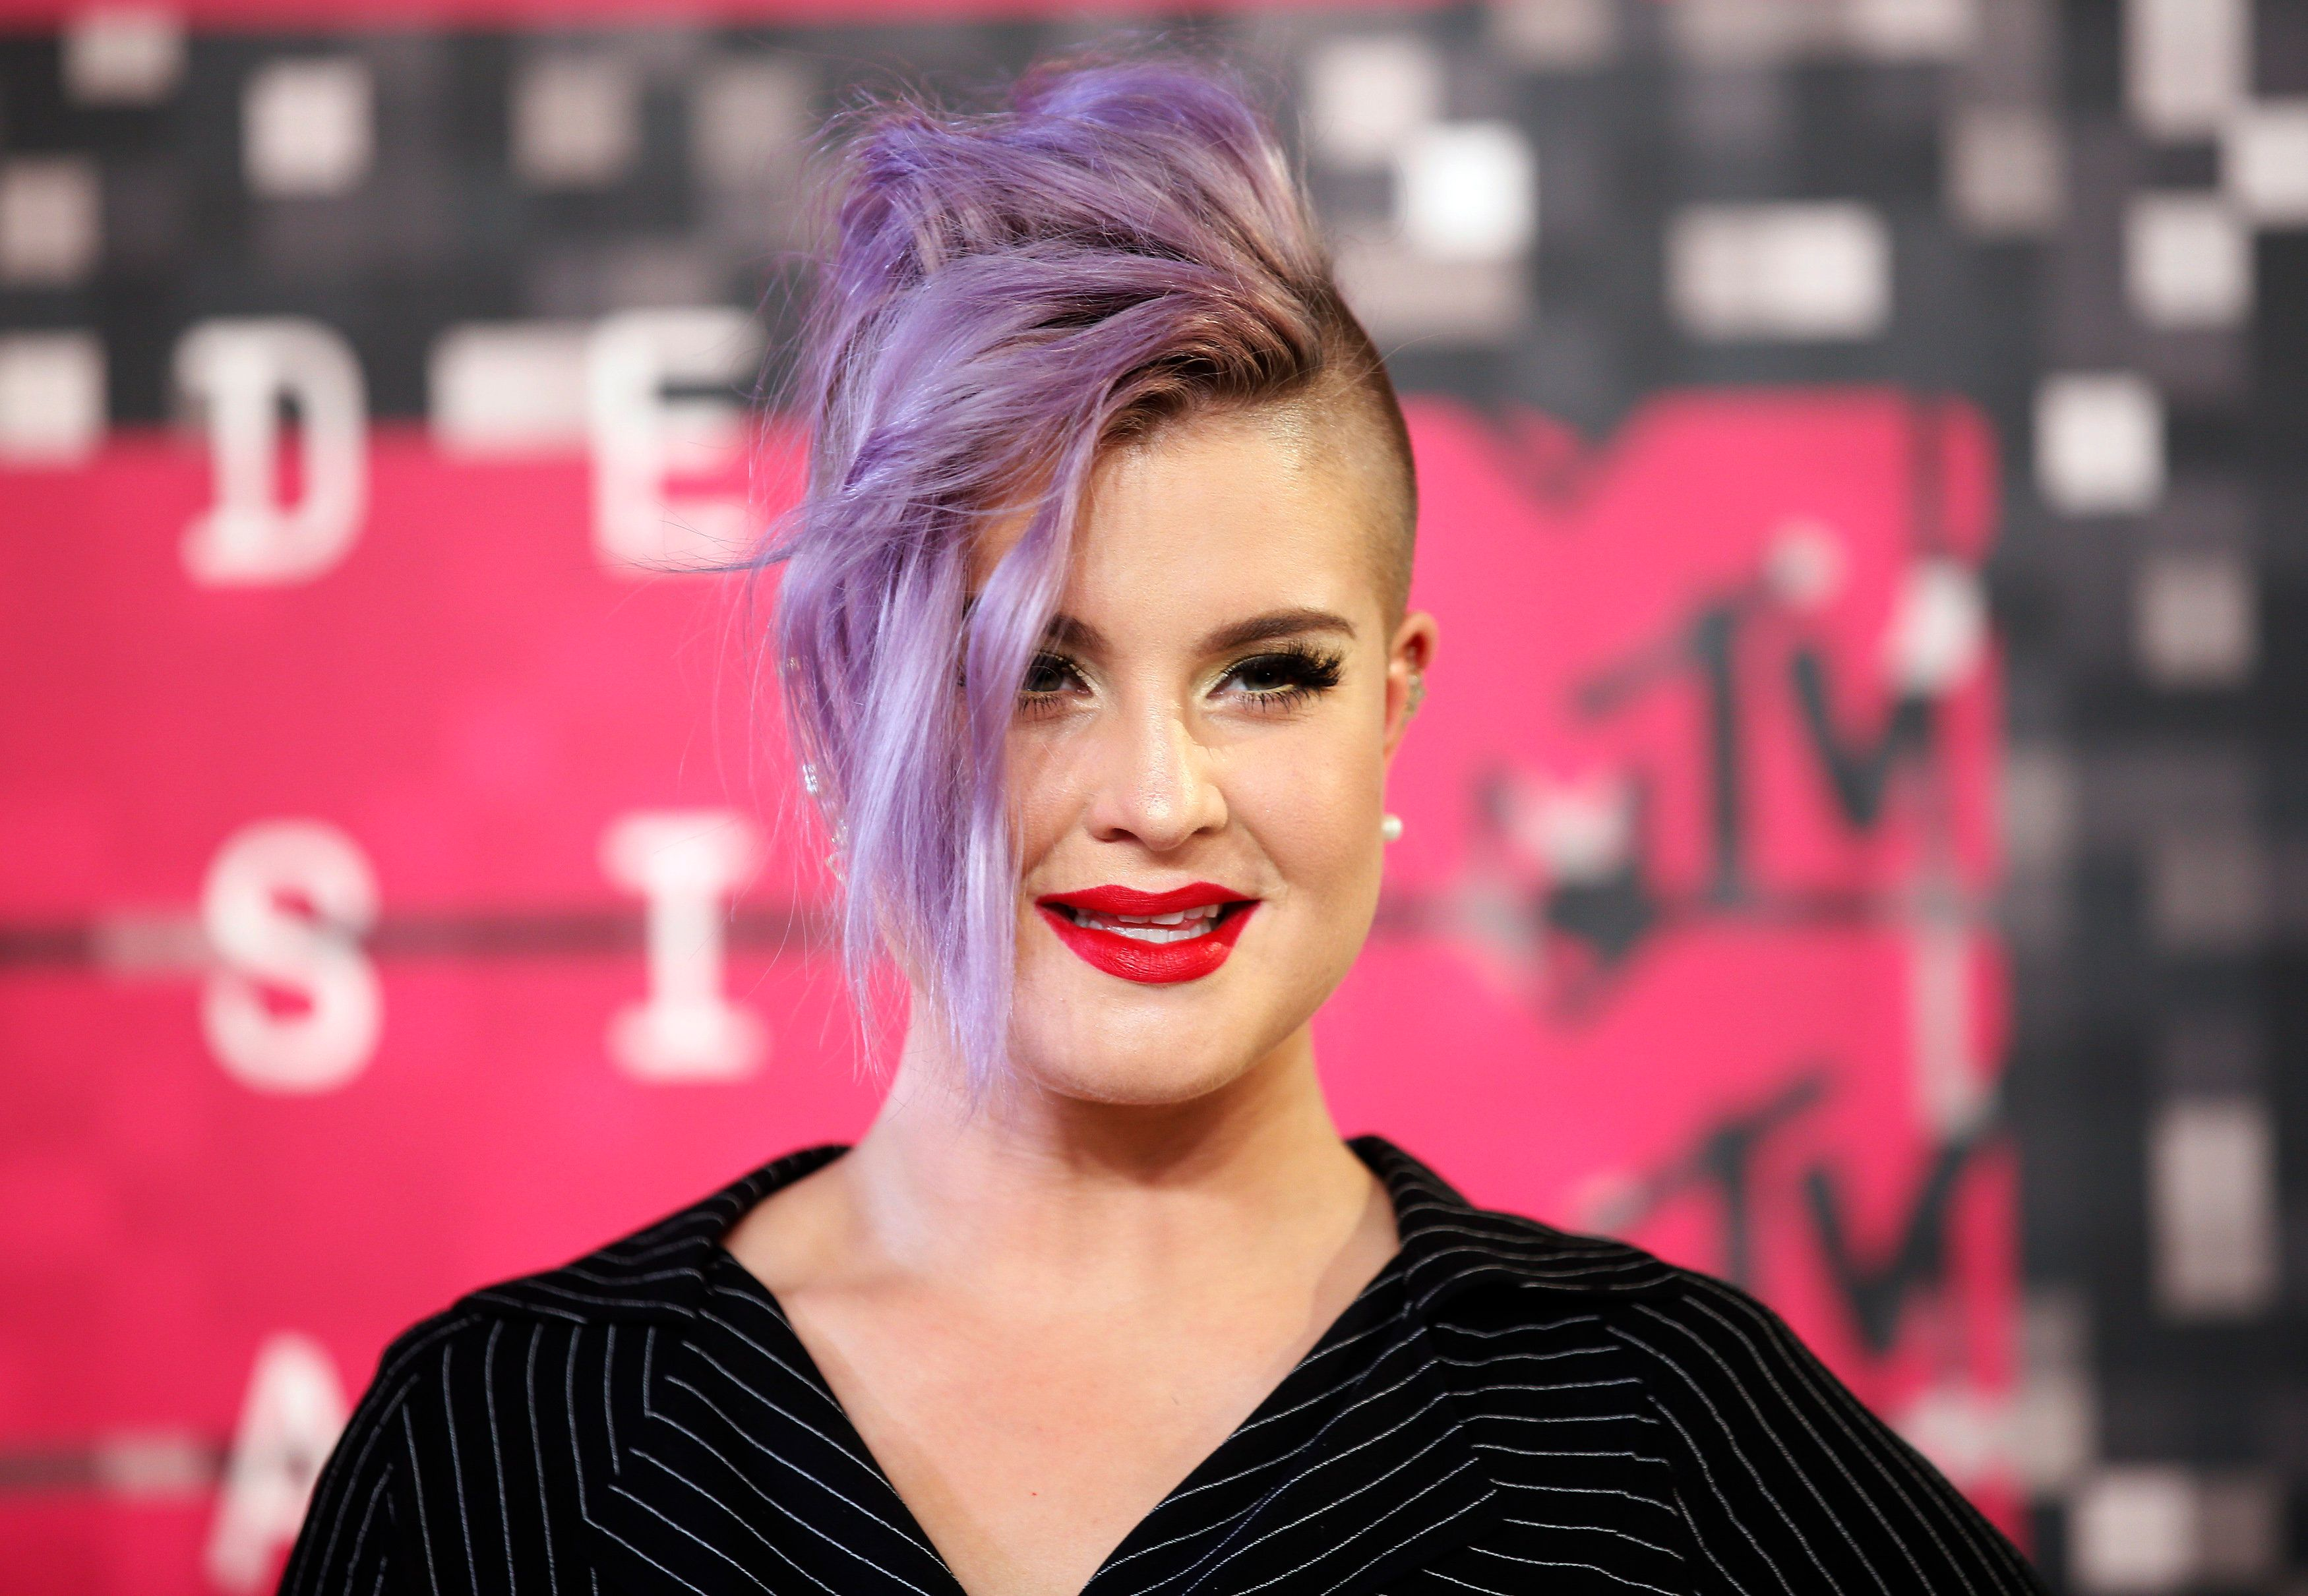 TV personality Kelly Osbourne arrives at the 2015 MTV Video Music Awards in Los Angeles, California, August 30, 2015.  REUTERS/Danny Moloshok